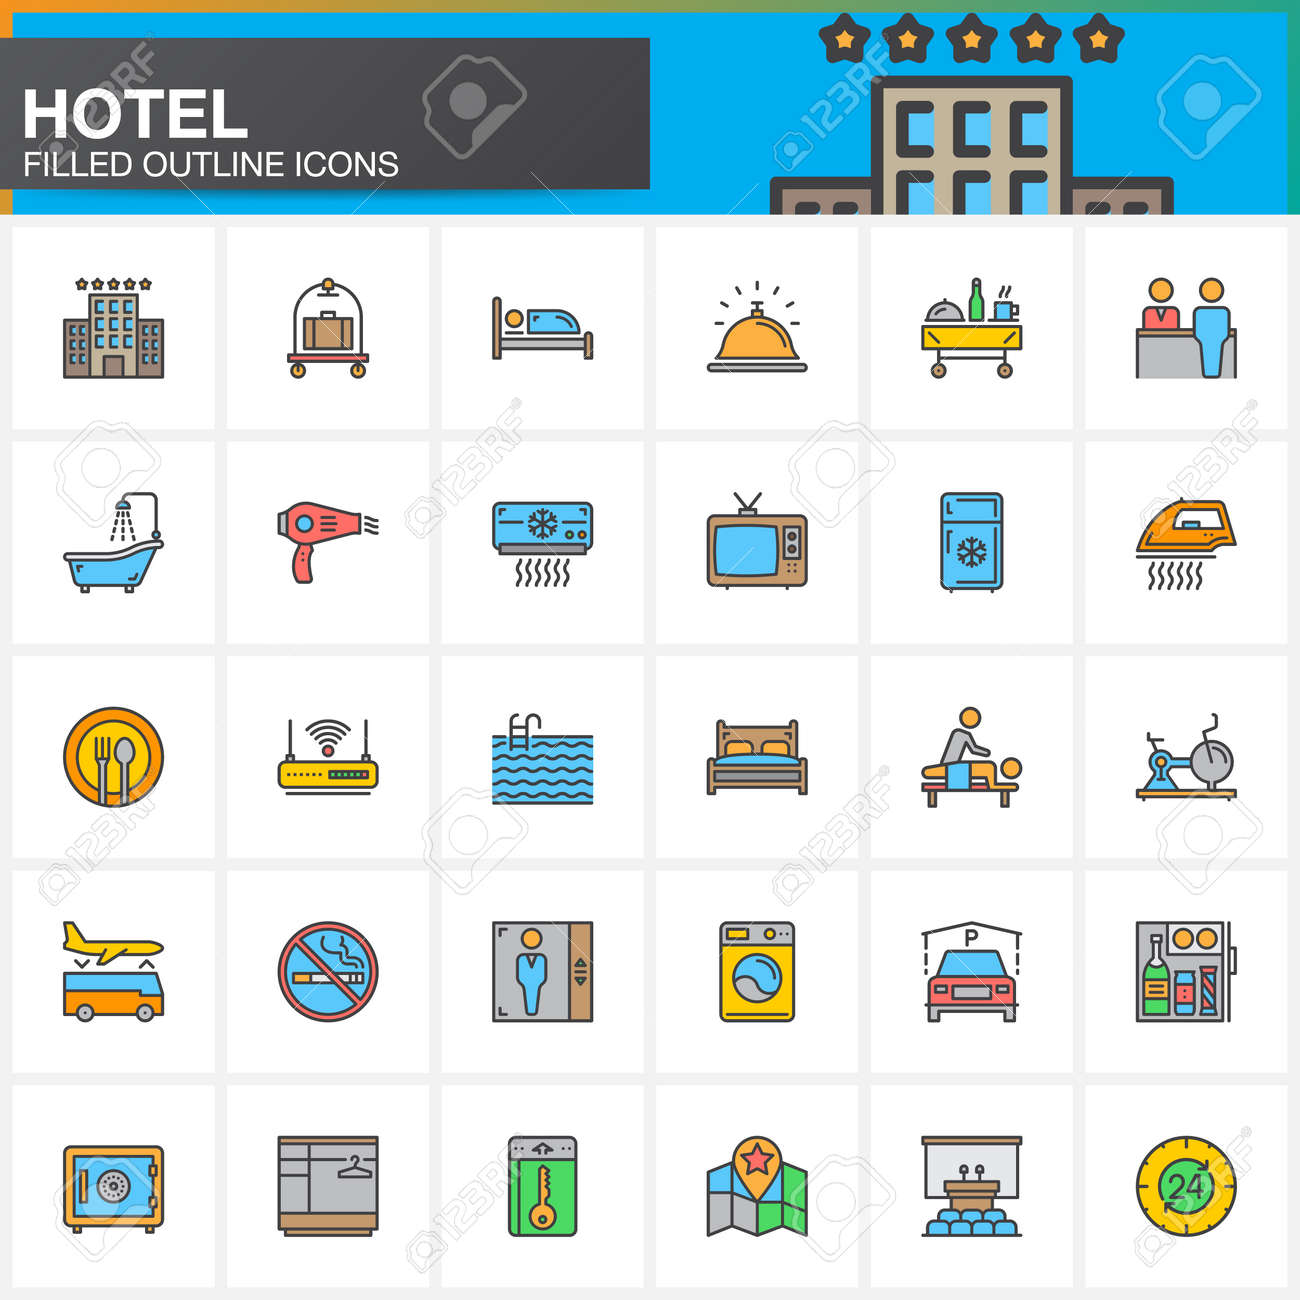 Hotel Services And Facilities Line Icons Set Filled Outline Vector Symbol Collection Linear Colorful